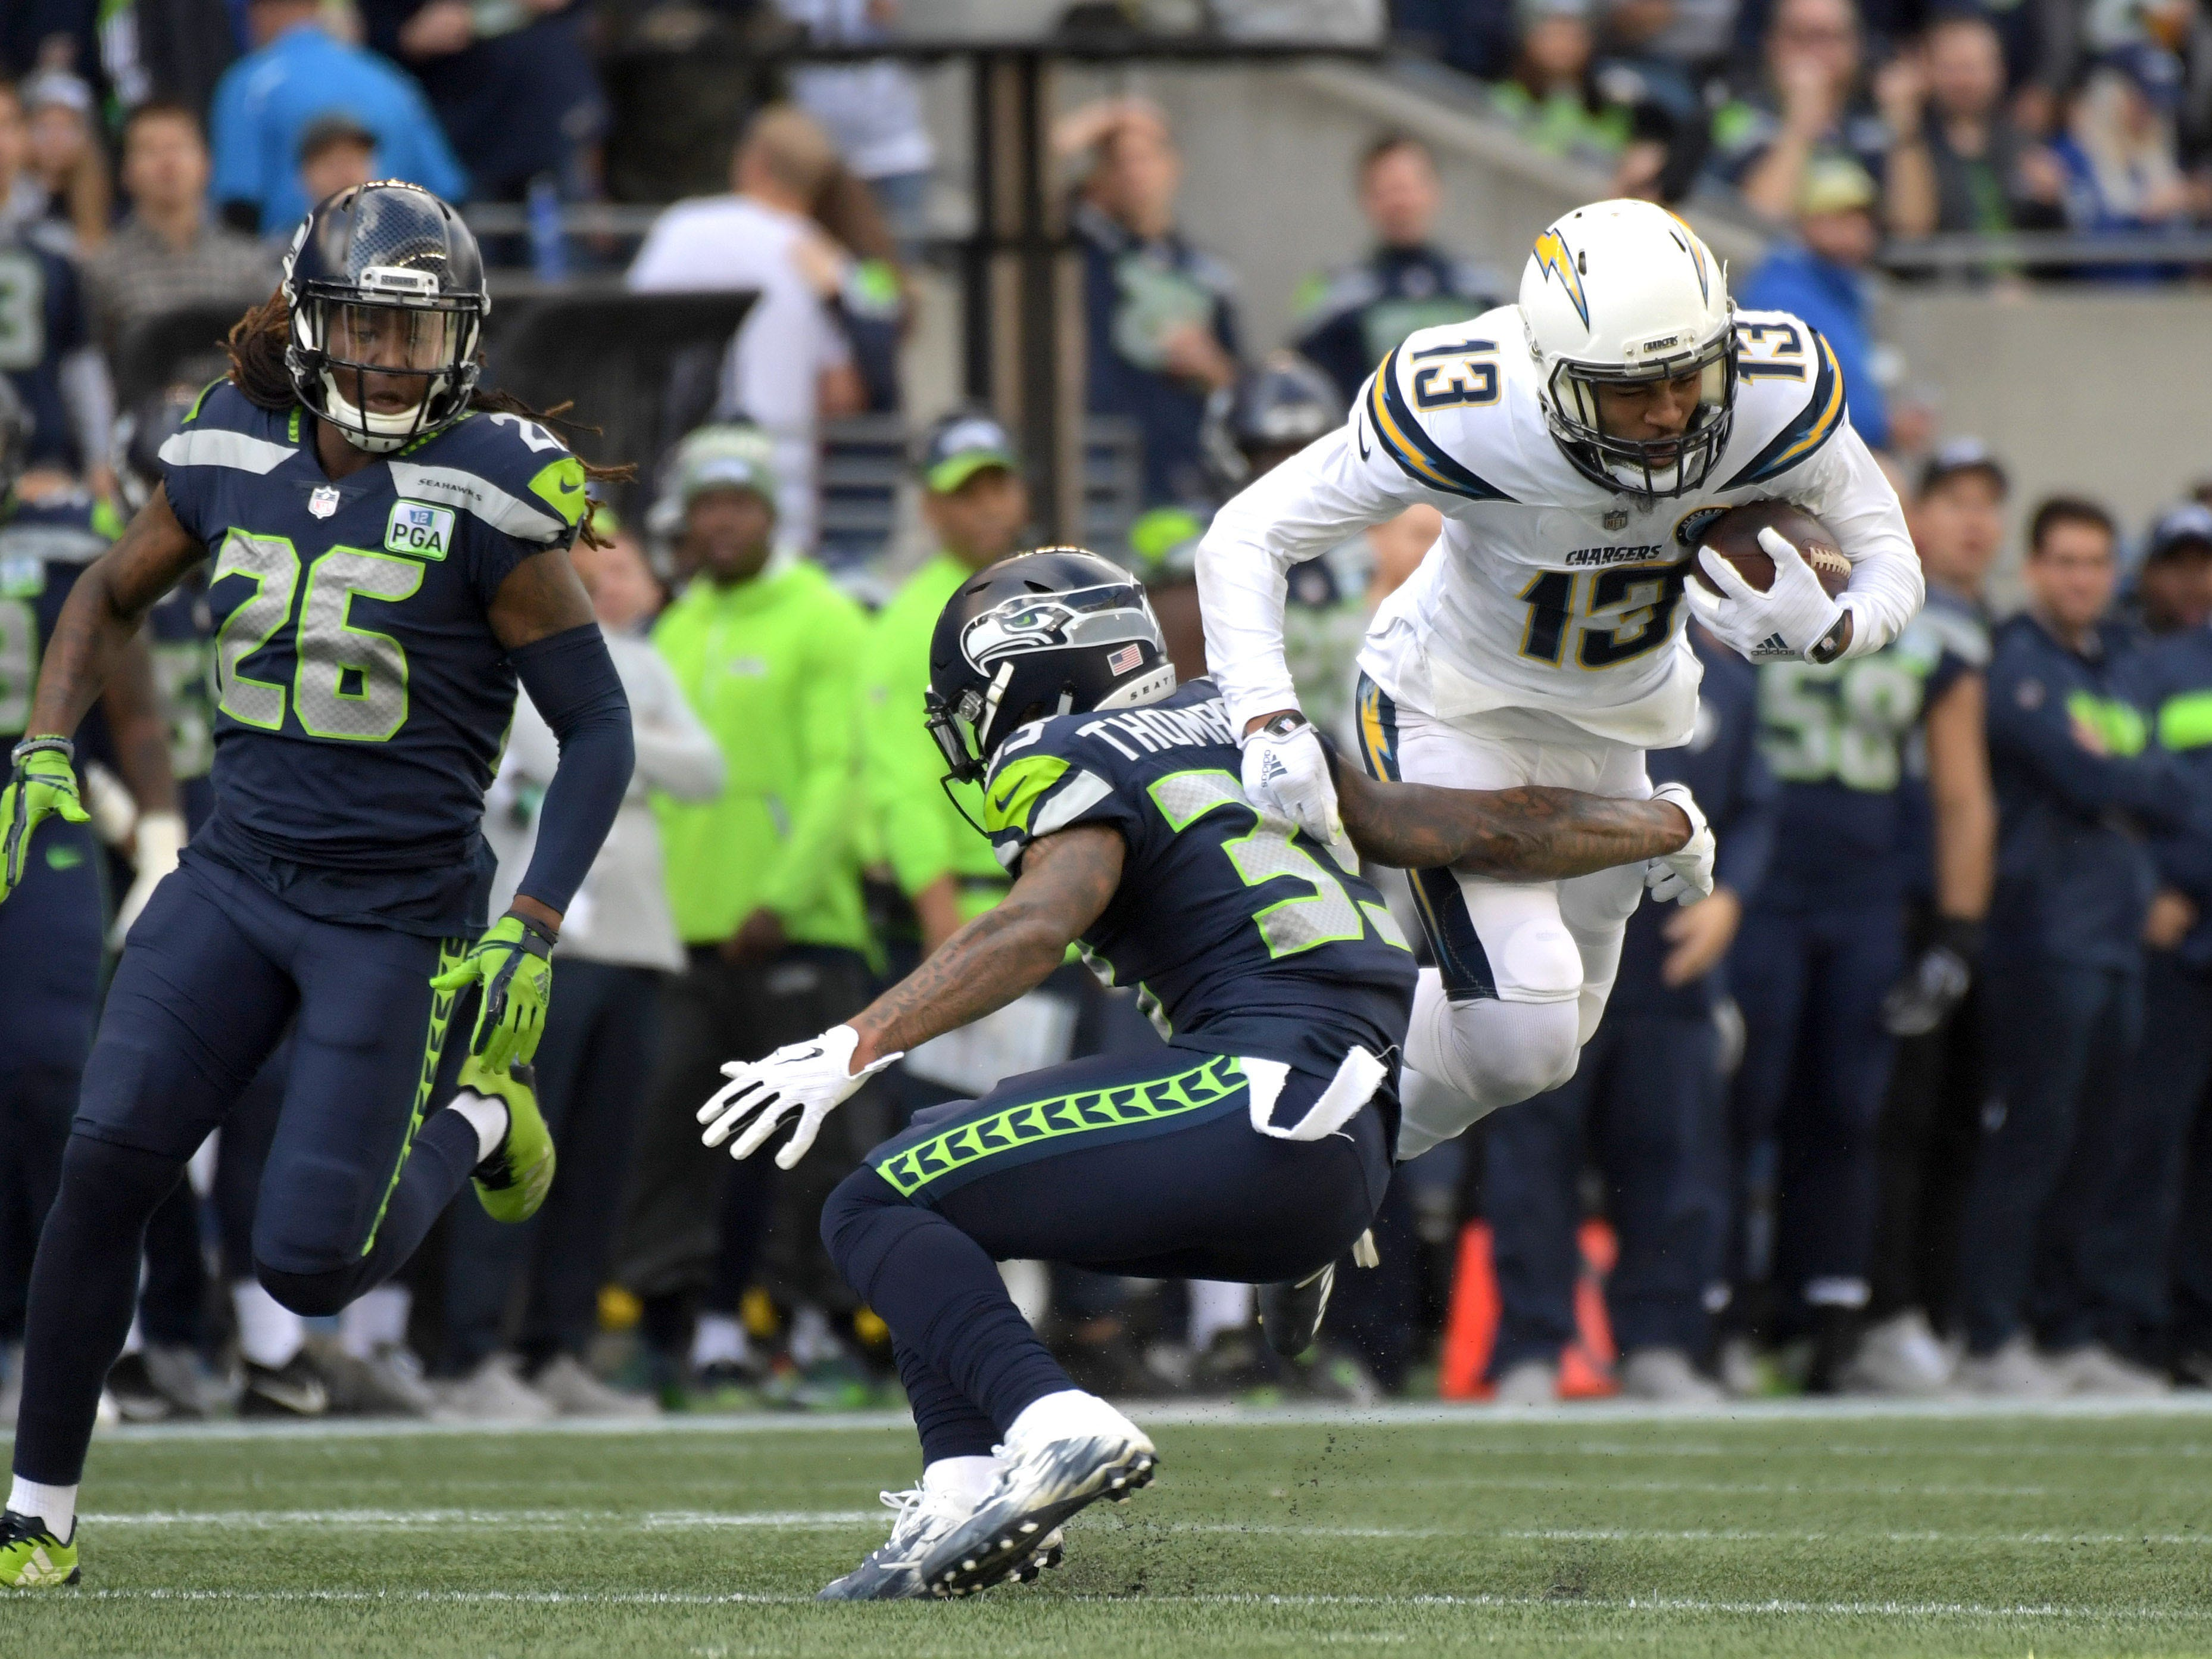 Seattle Seahawks defensive back Tedric Thompson (33) gets an arm out to trip up Los Angeles Chargers wide receiver Keenan Allen (13) in the second quarter at CenturyLink Field.